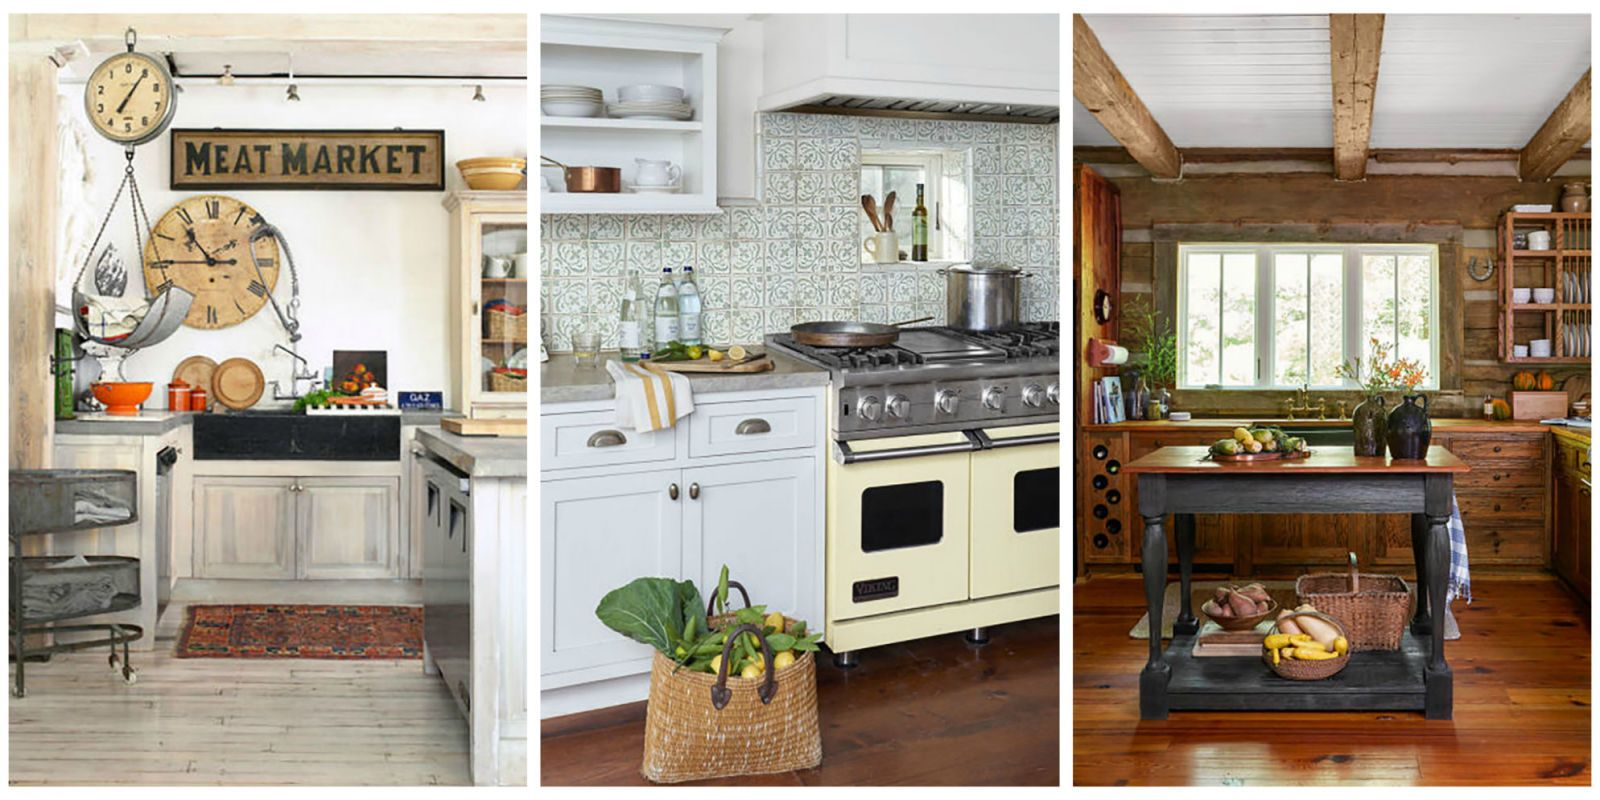 18 Farmhouse Style Kitchens   Rustic Decor Ideas for Kitchens Find more ways to add farmhouse styleto every room of the house  plus   check out our full collection of style inspiration for country homes